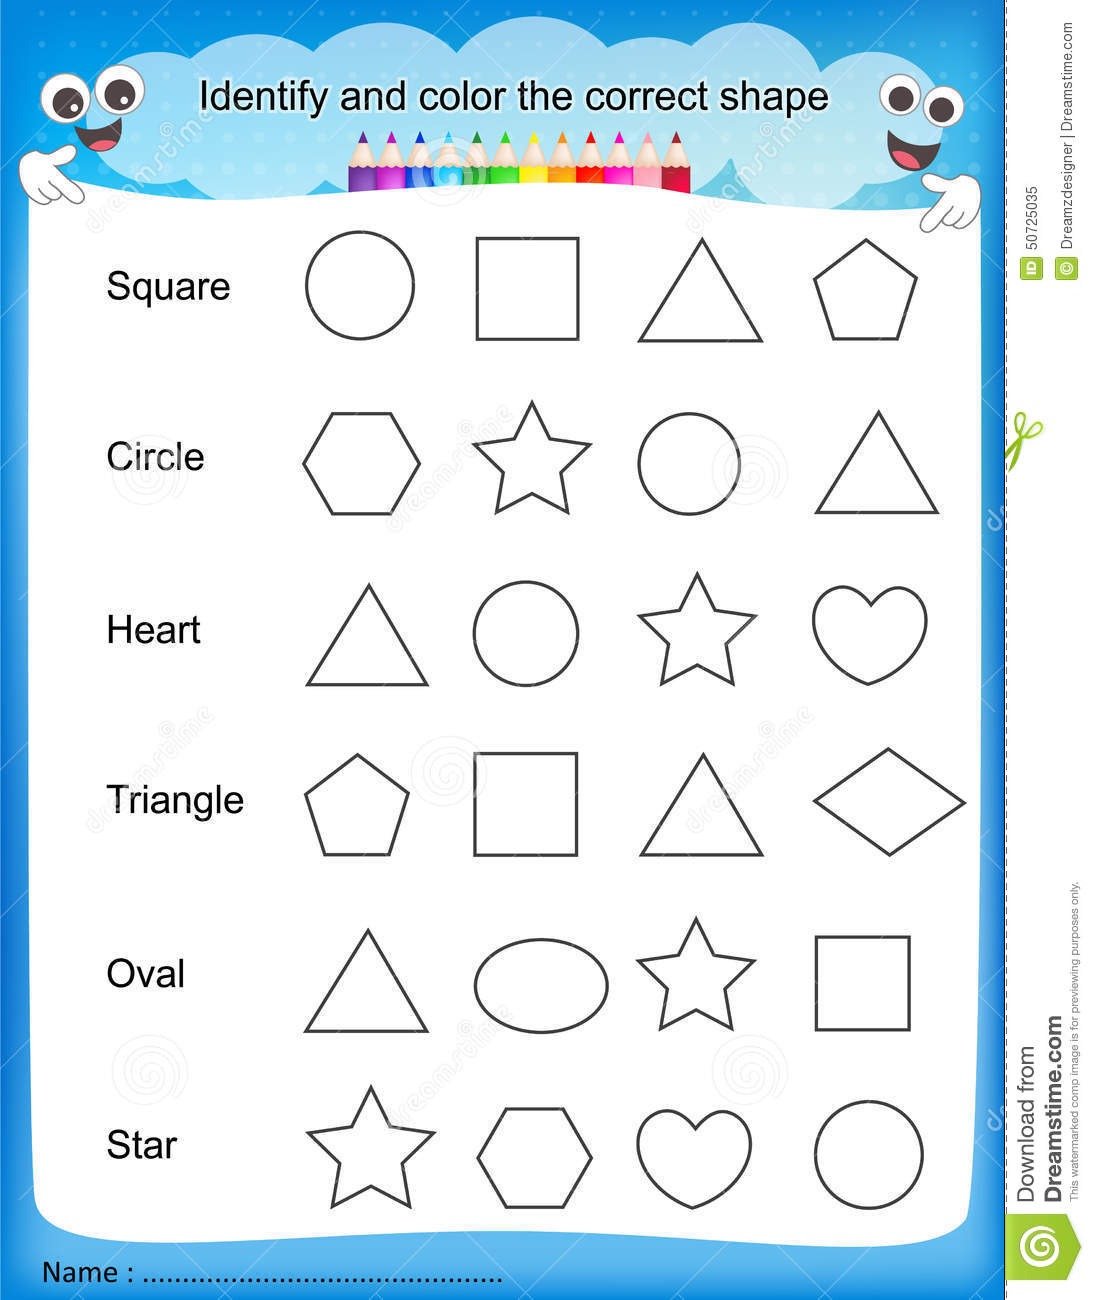 Shapes And Colors Worksheets For Kindergarten  801503